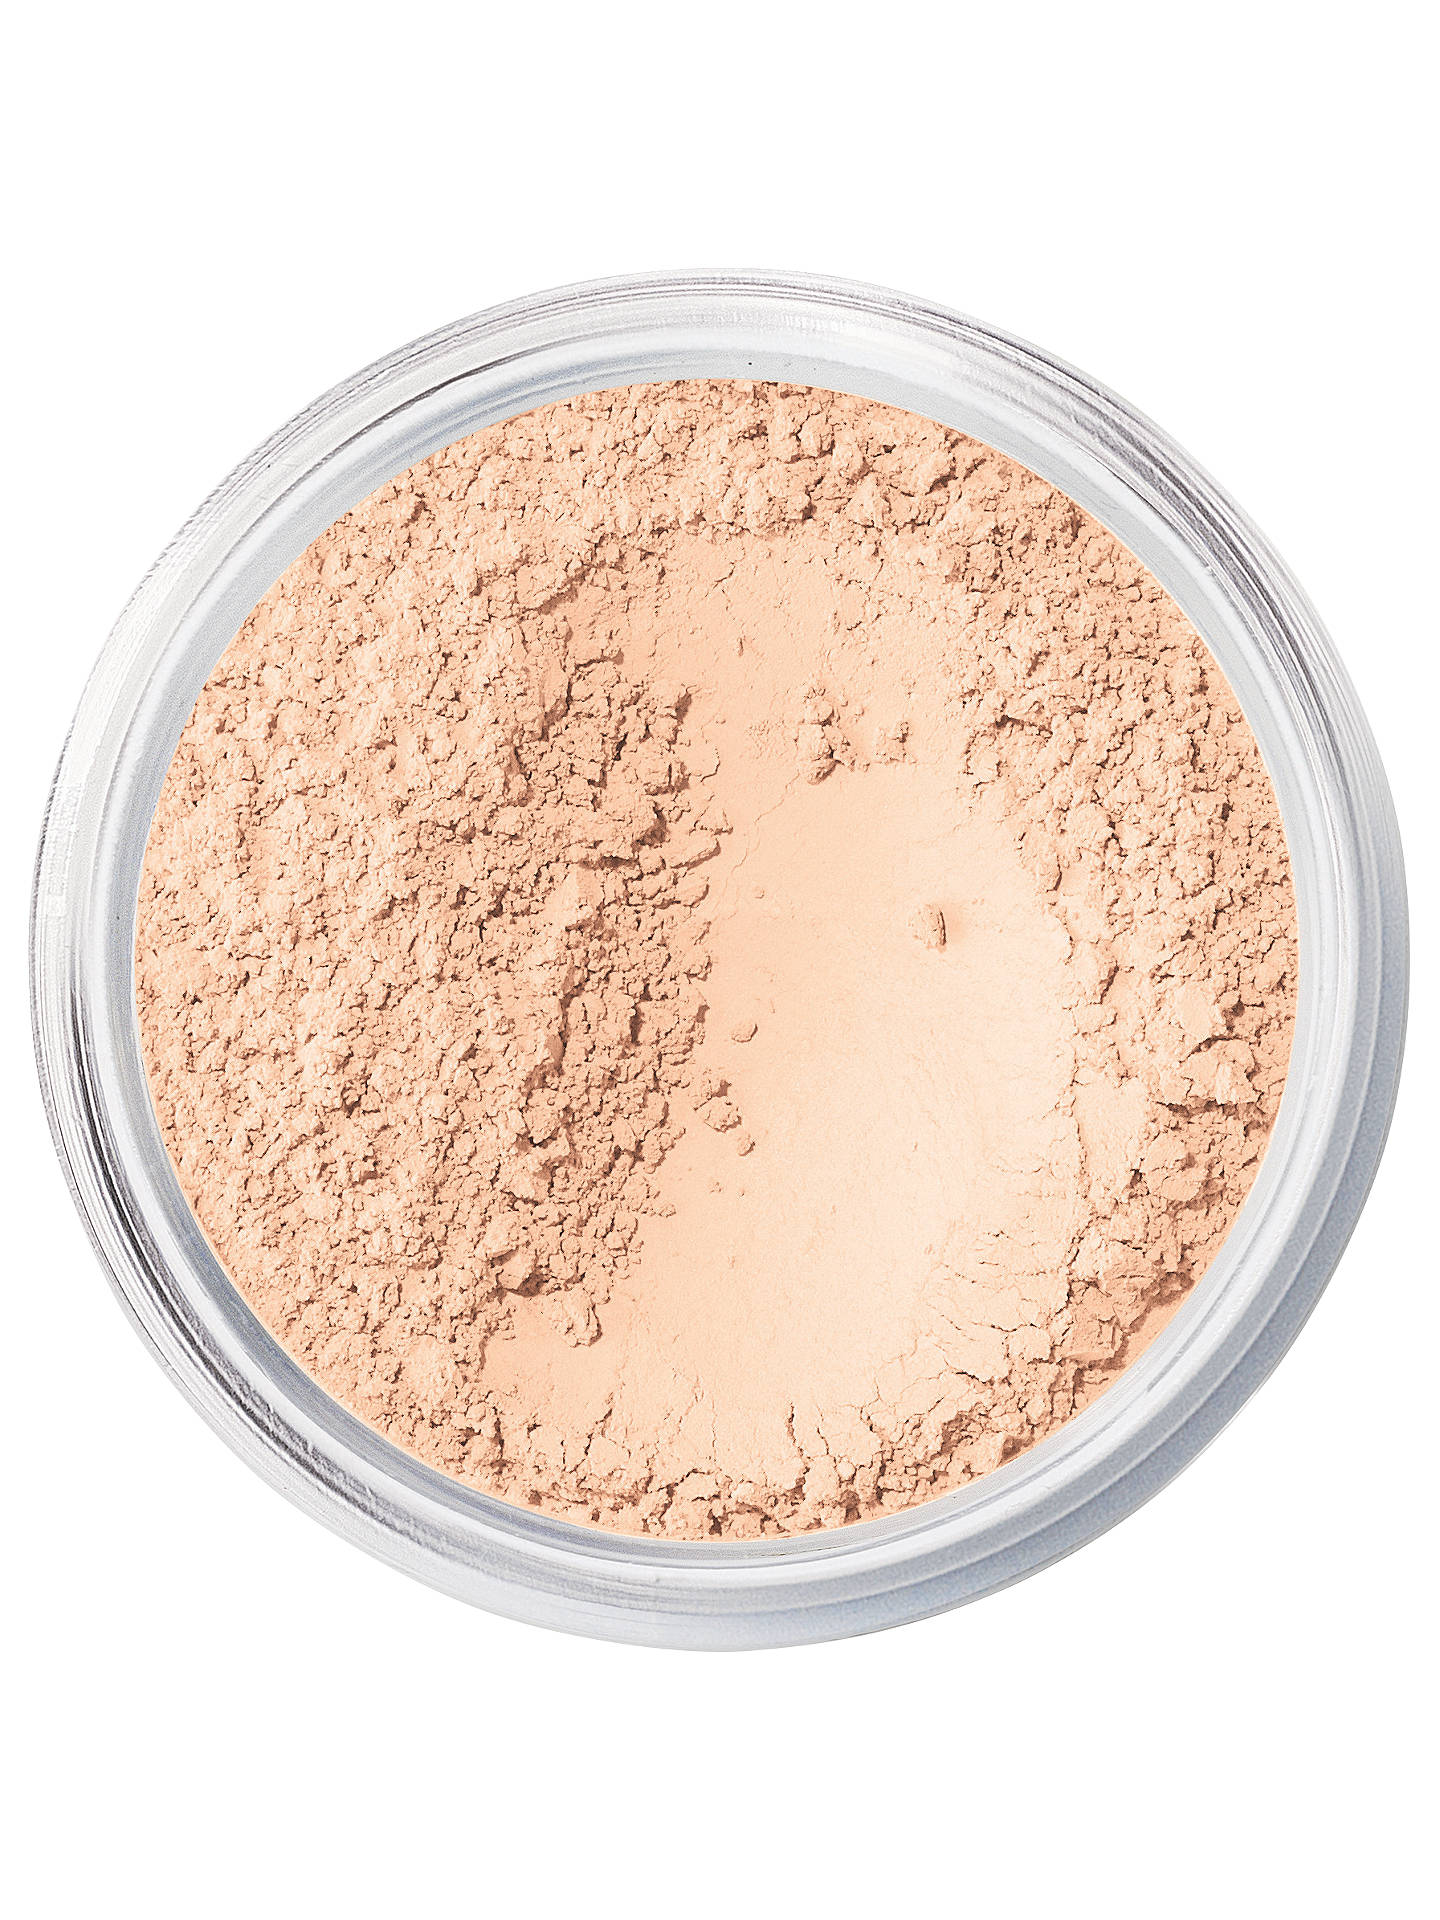 Buy bareMinerals Matte Foundation SPF 15, Fair Online at johnlewis.com